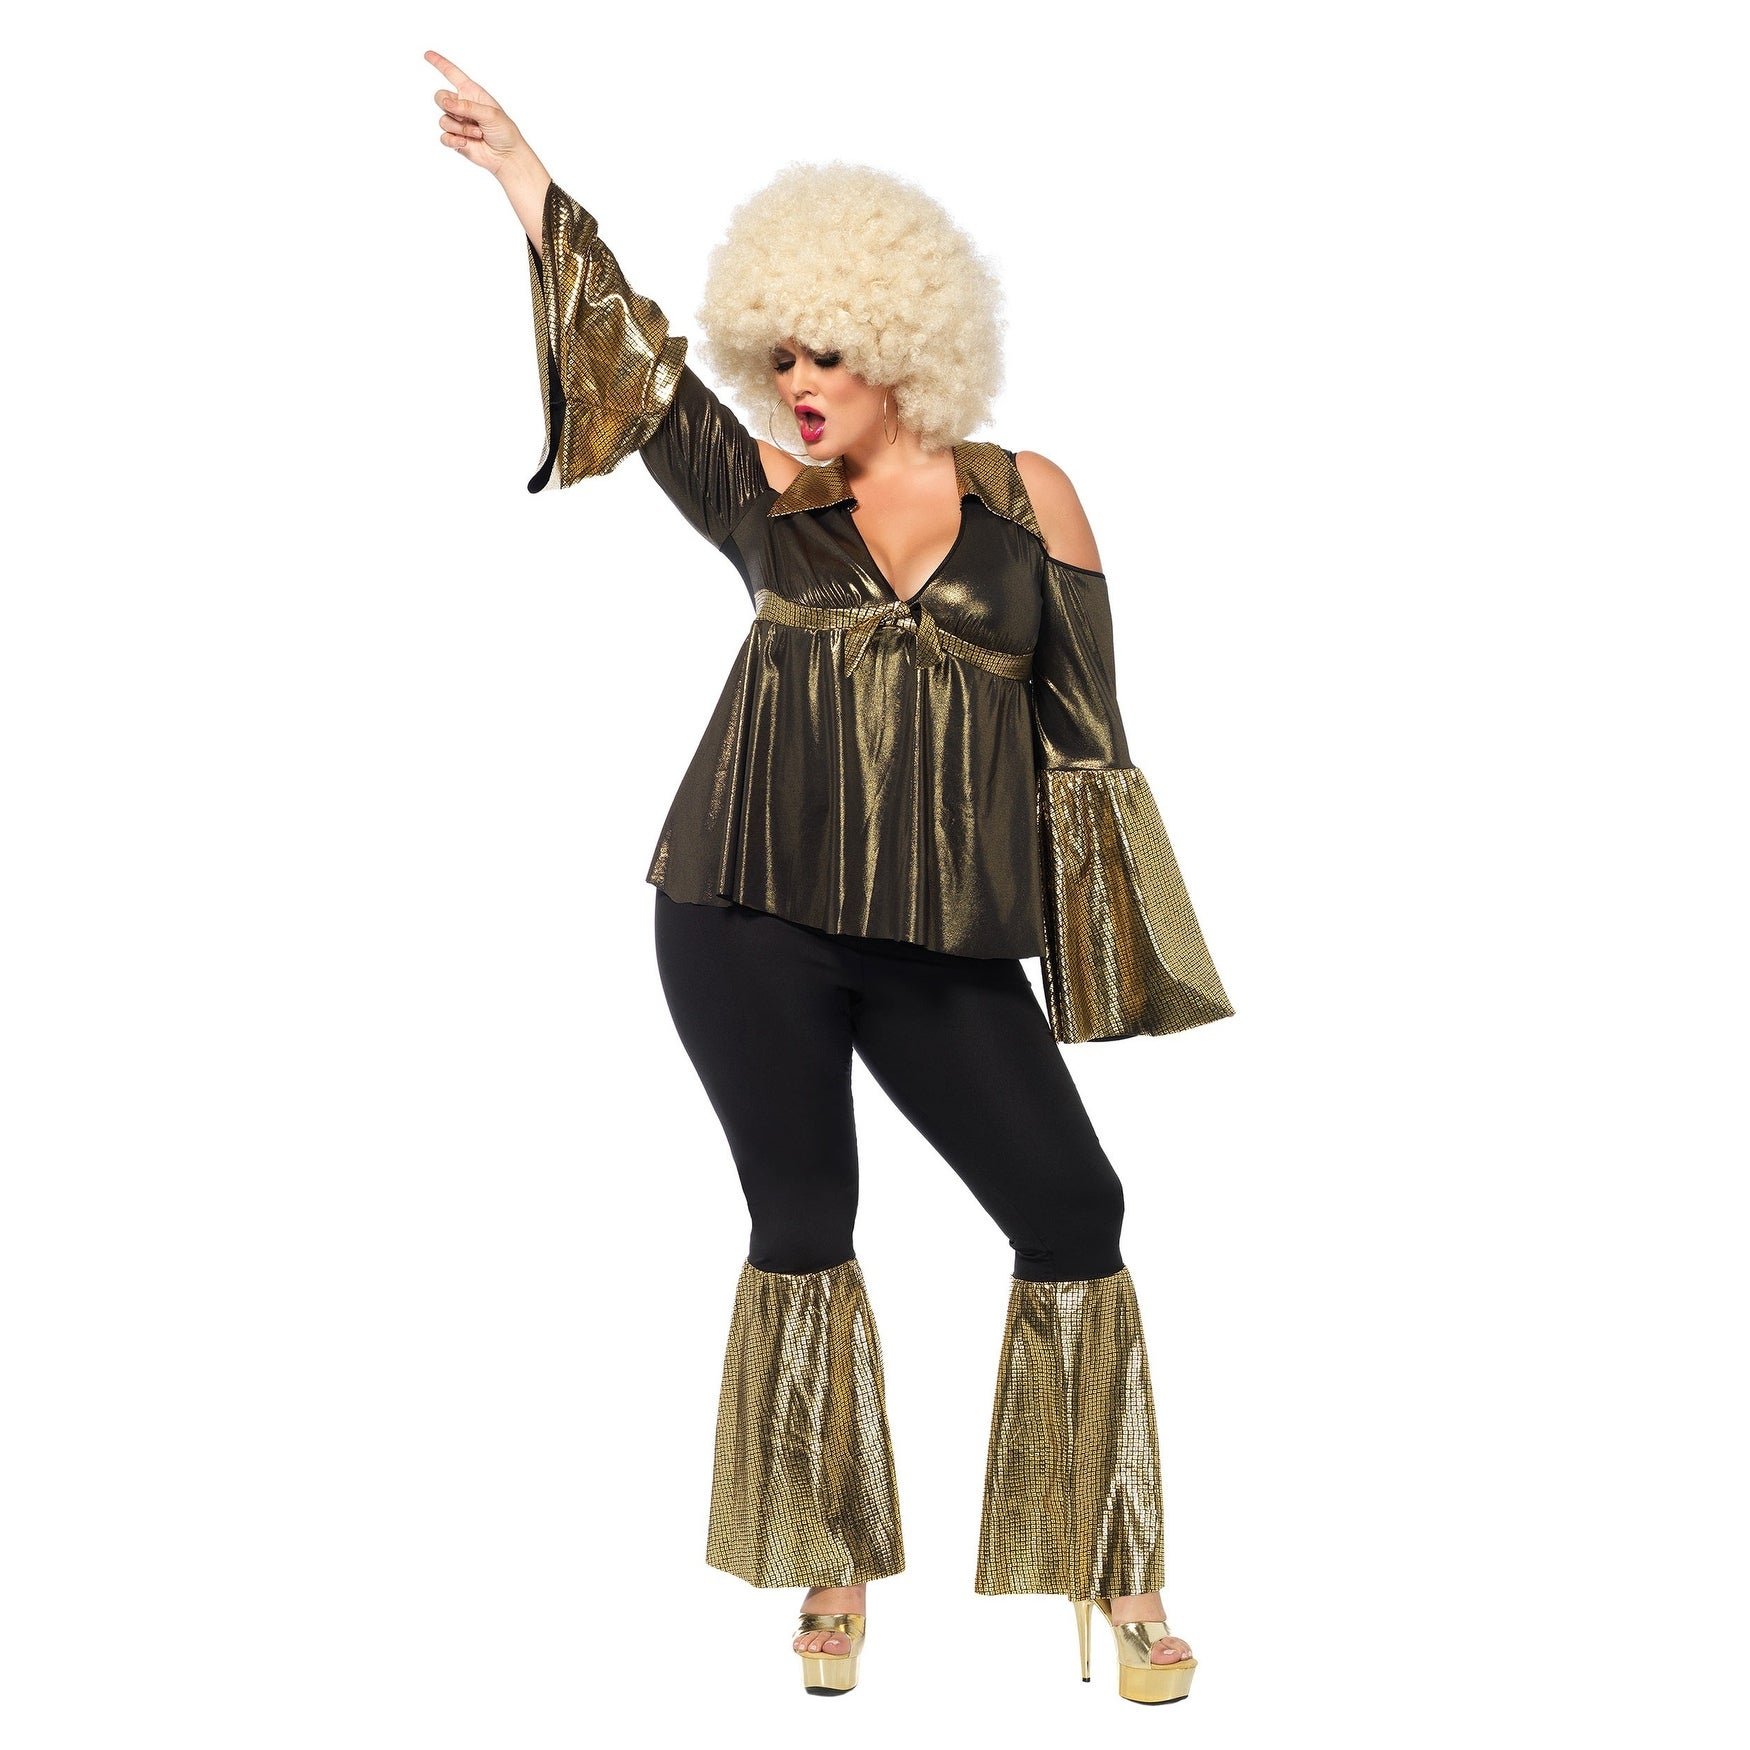 Plus Size Disco Diva Costume - Free Shipping Today - Overstock - 19791185  sc 1 st  Overstock.com & Plus Size Disco Diva Costume - Free Shipping Today - Overstock ...